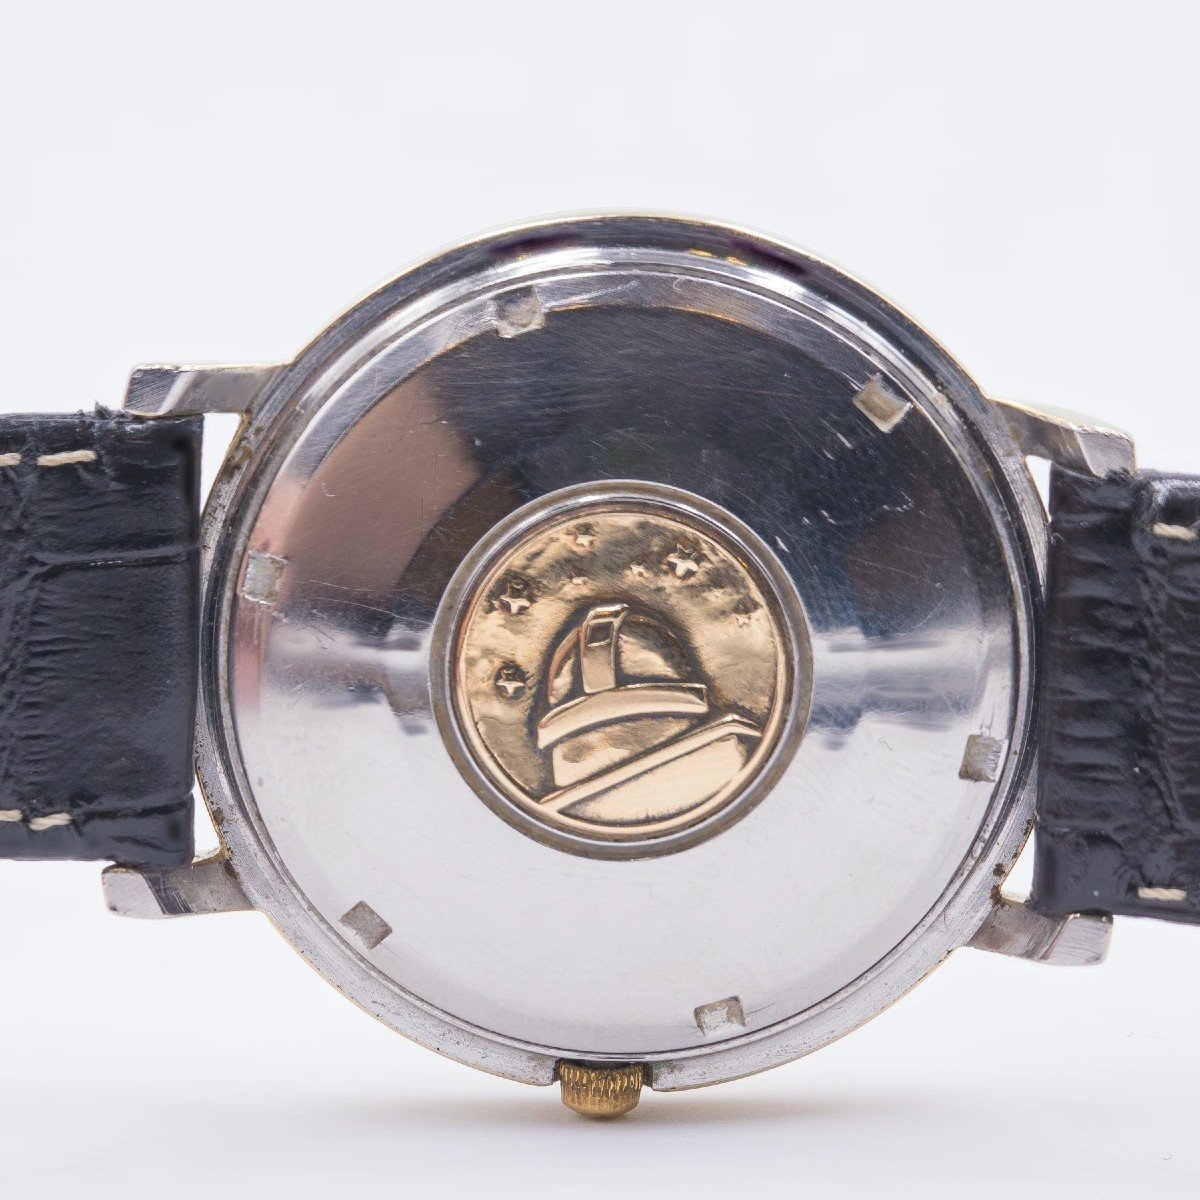 Vintage Omega Constellation Gold Plated Automatic Watch, 1963-photo-4